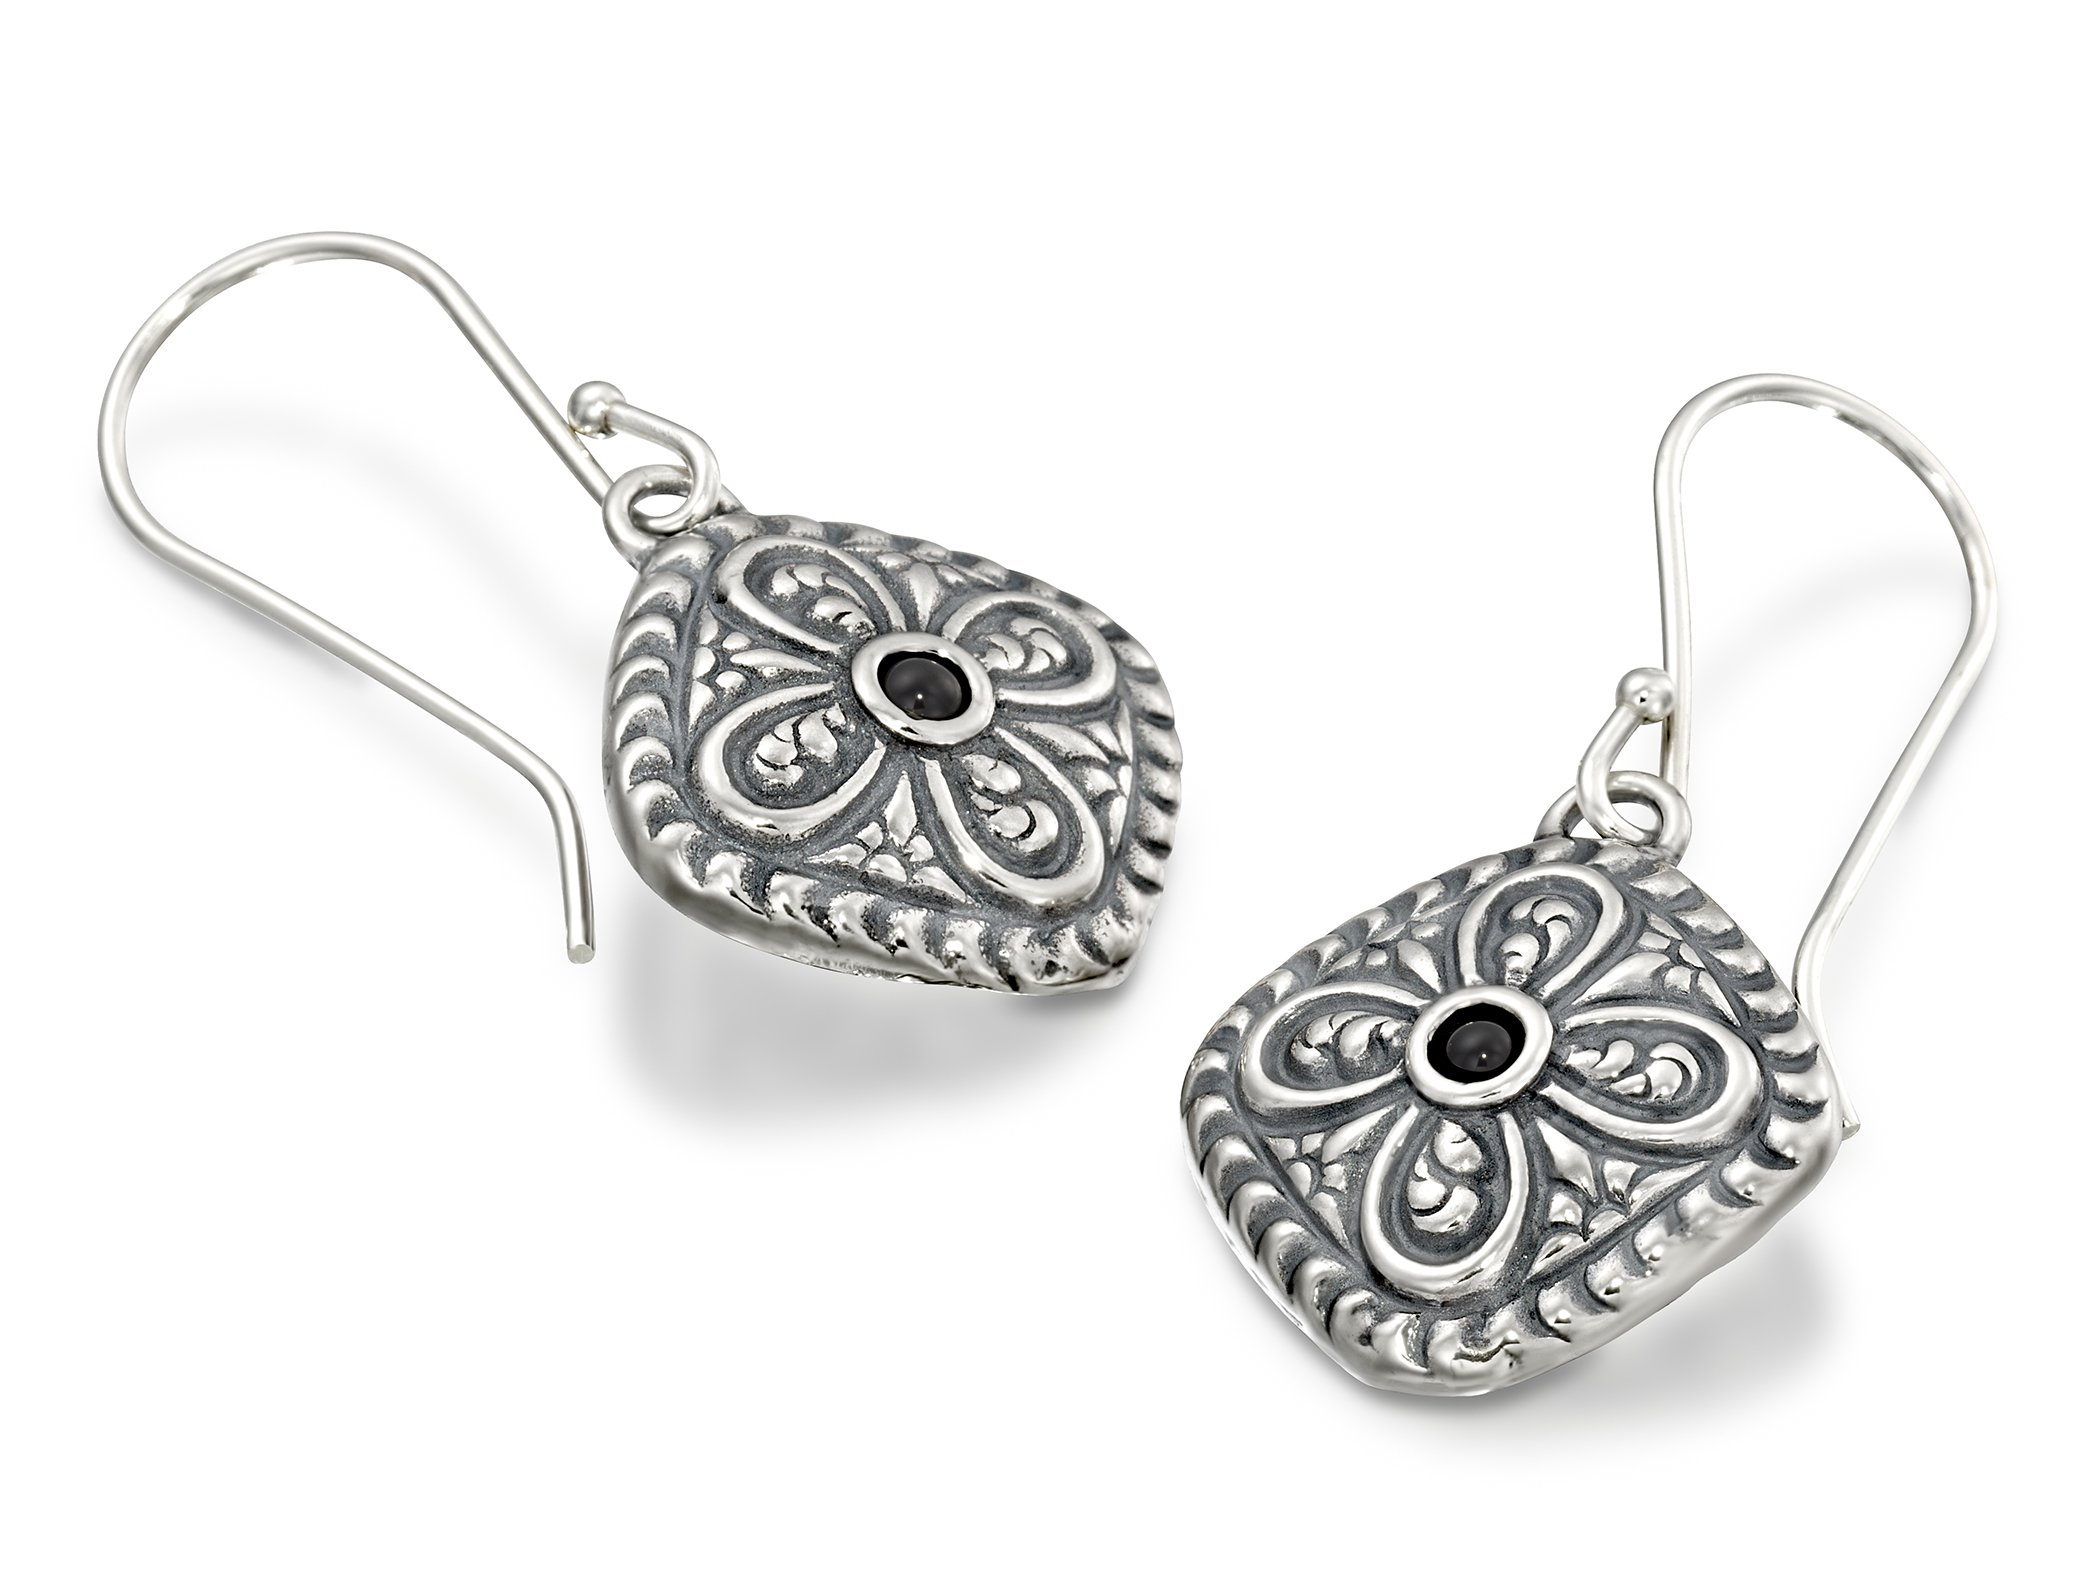 Antique Style 925 Sterling Silver Black Onyx Gemstone Earrings Diamond Shaped With Ornate Floral Design